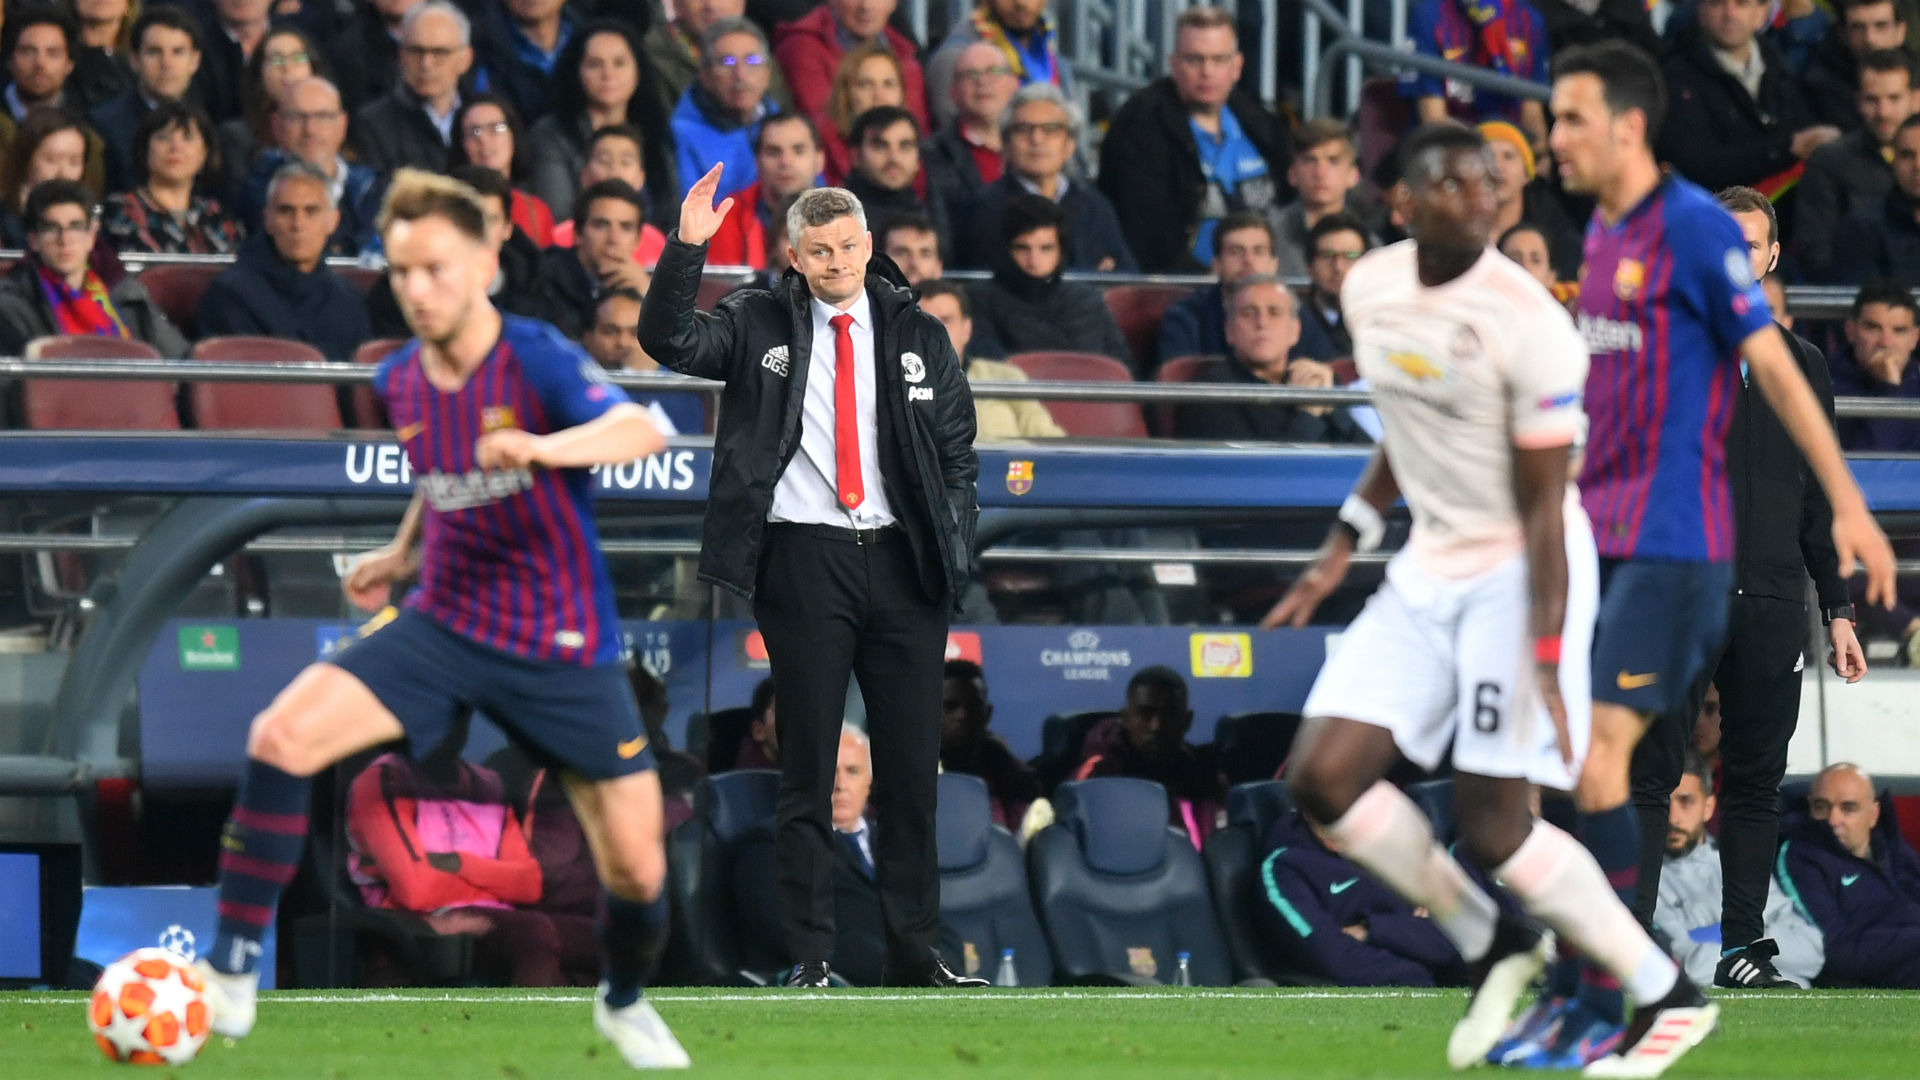 History repeats for Solskjaer as Manchester United crash out of Champions League